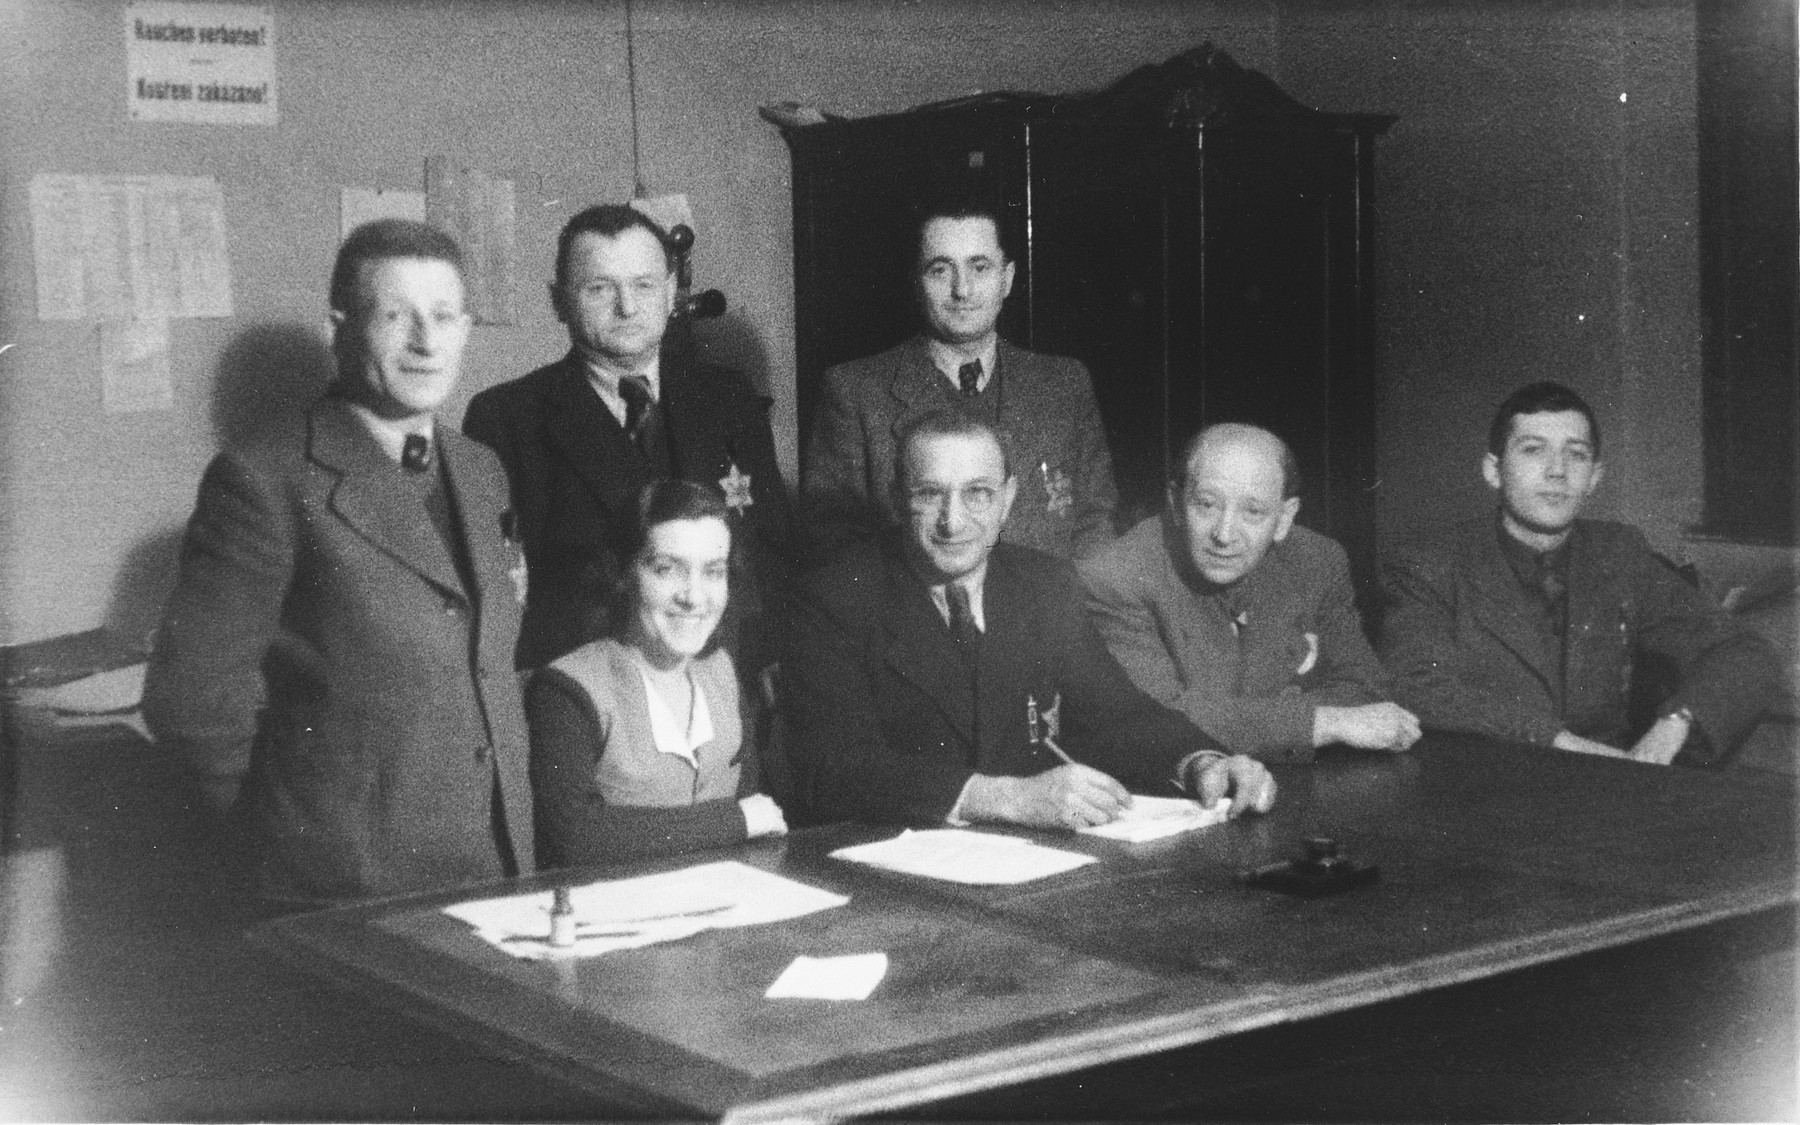 Workers in a Jewish administrative office, probably in Uhersky Brod.  Standing on the left is Mauric Ganger.  He and his wife Emilie were deported from Uhersky Brod to Theresienstadt on January 23, 1943 and from there to Auschwitz where they perished.